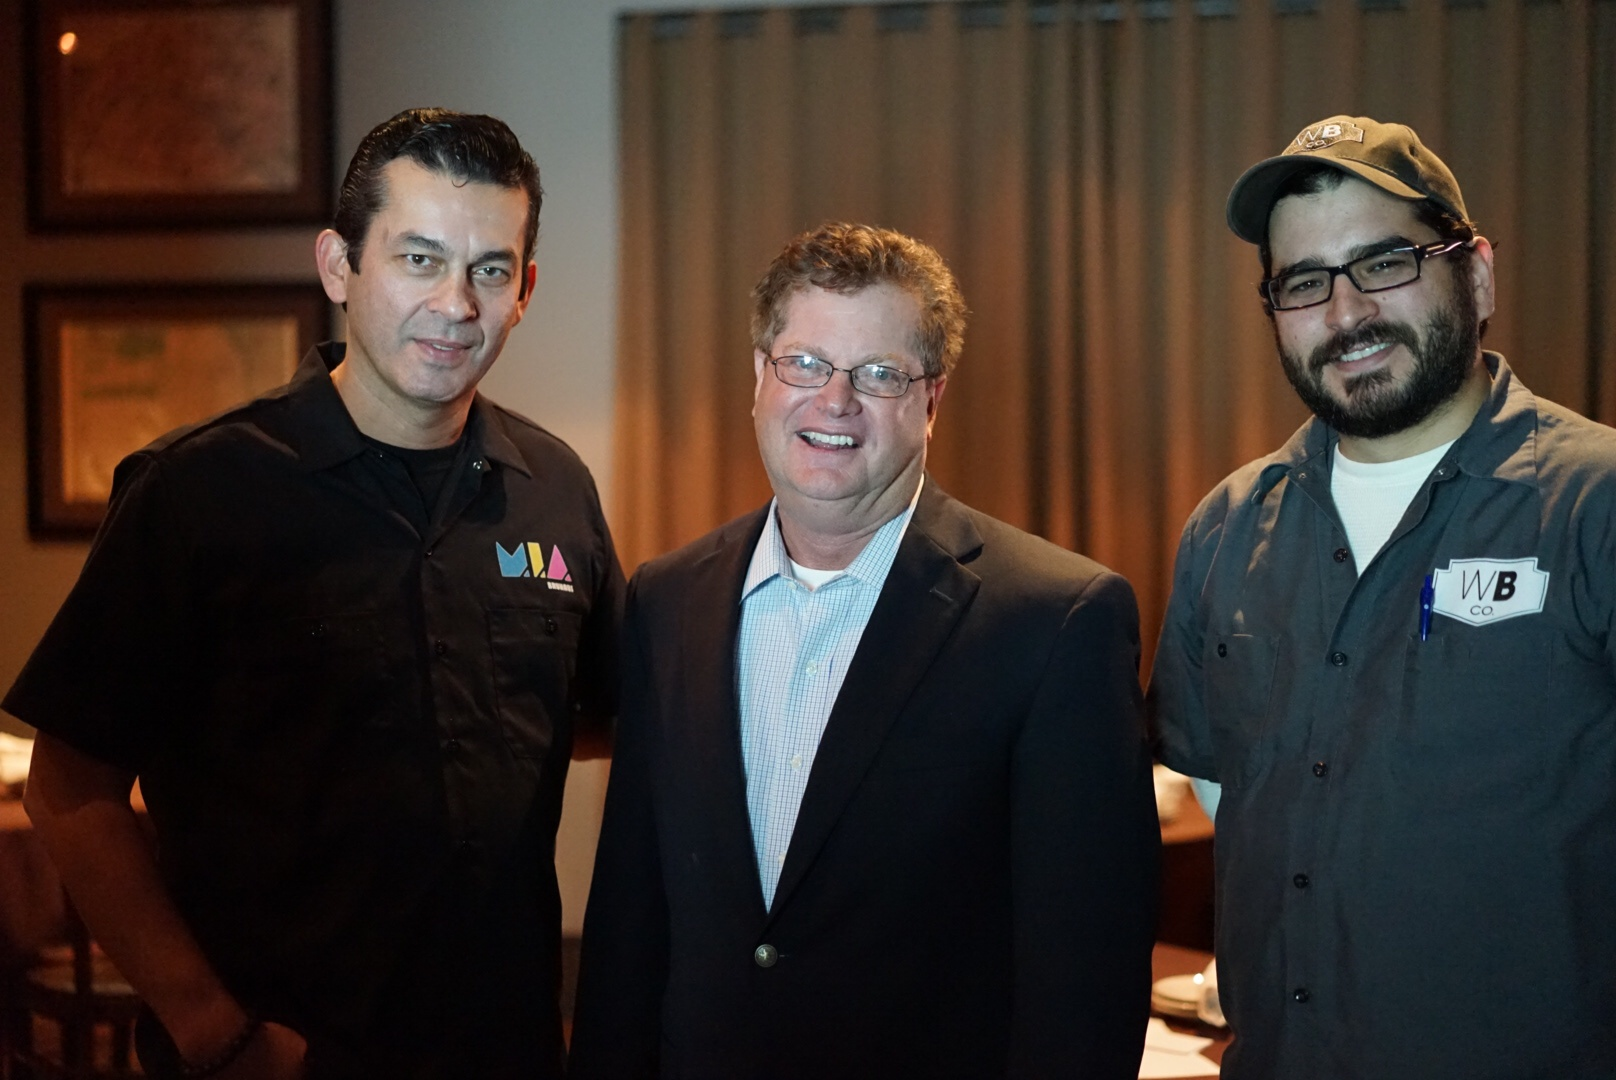 From Left: Eddie Leon (MIA Brewing); Mitch Rubin (FBWA); Luis Brignoni (Wynwood Brewing)